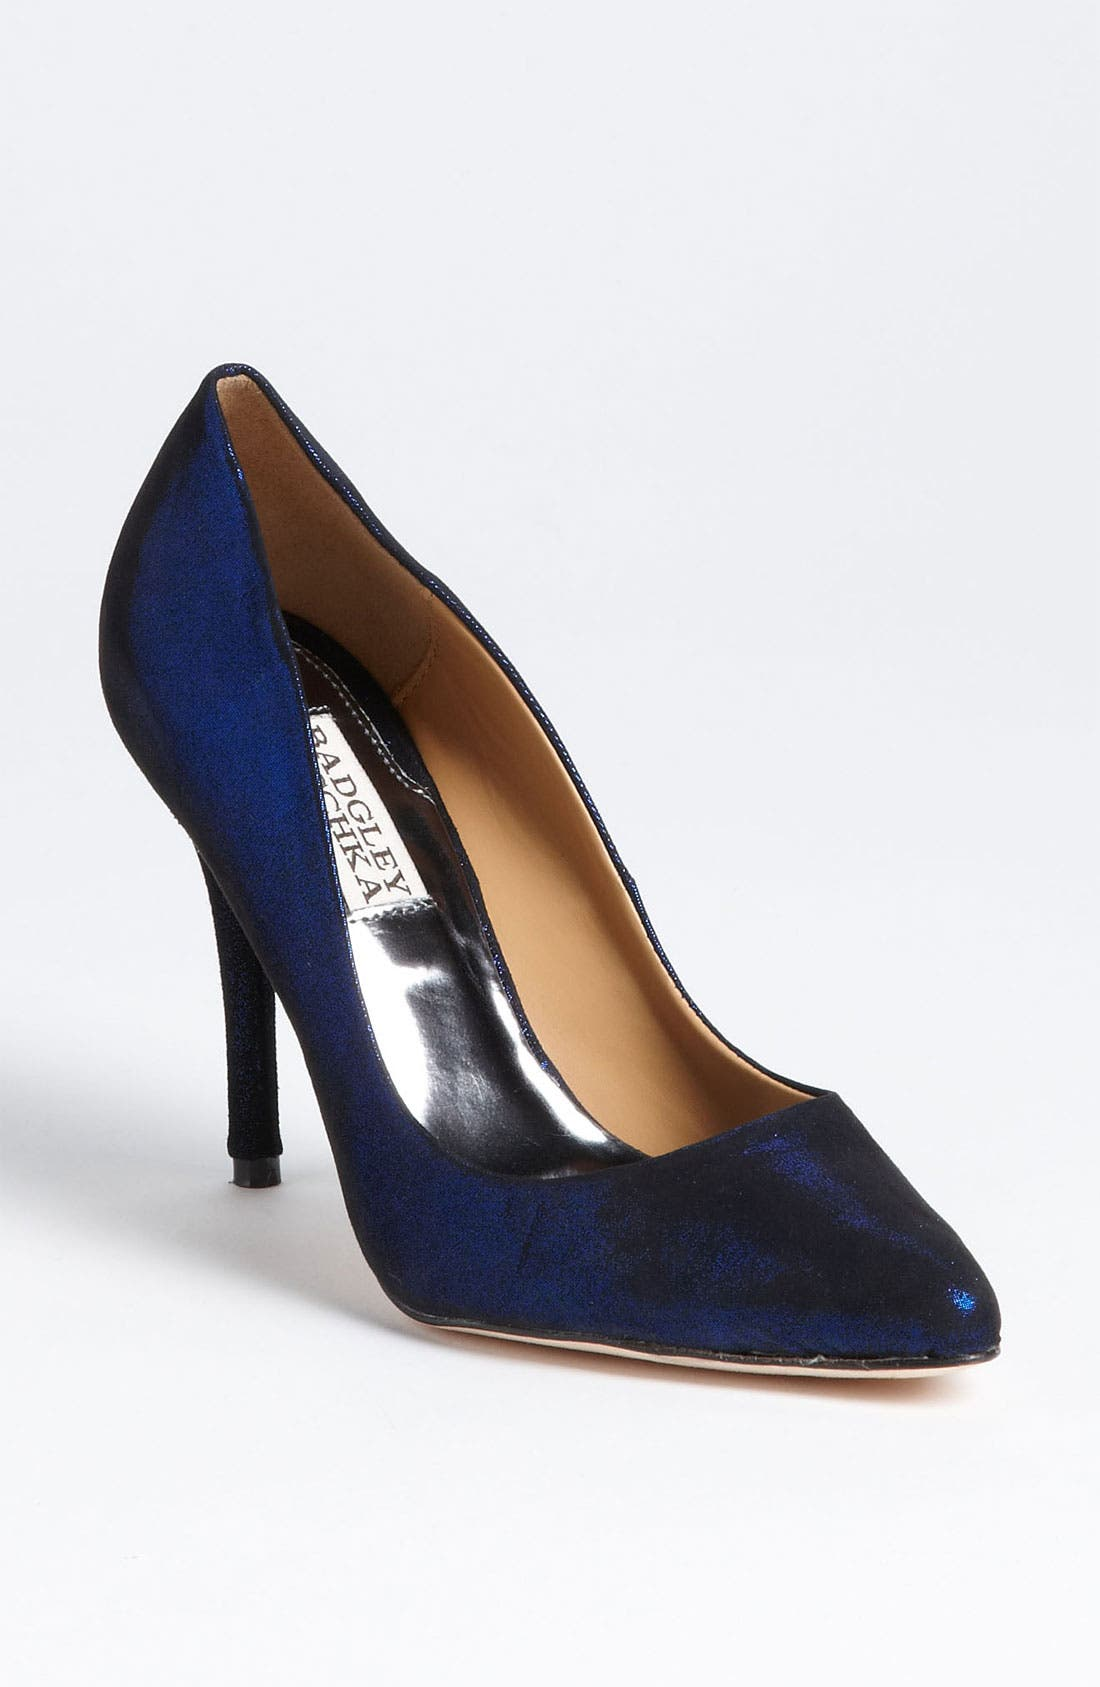 Alternate Image 1 Selected - Badgley Mischka 'Vision' Pump